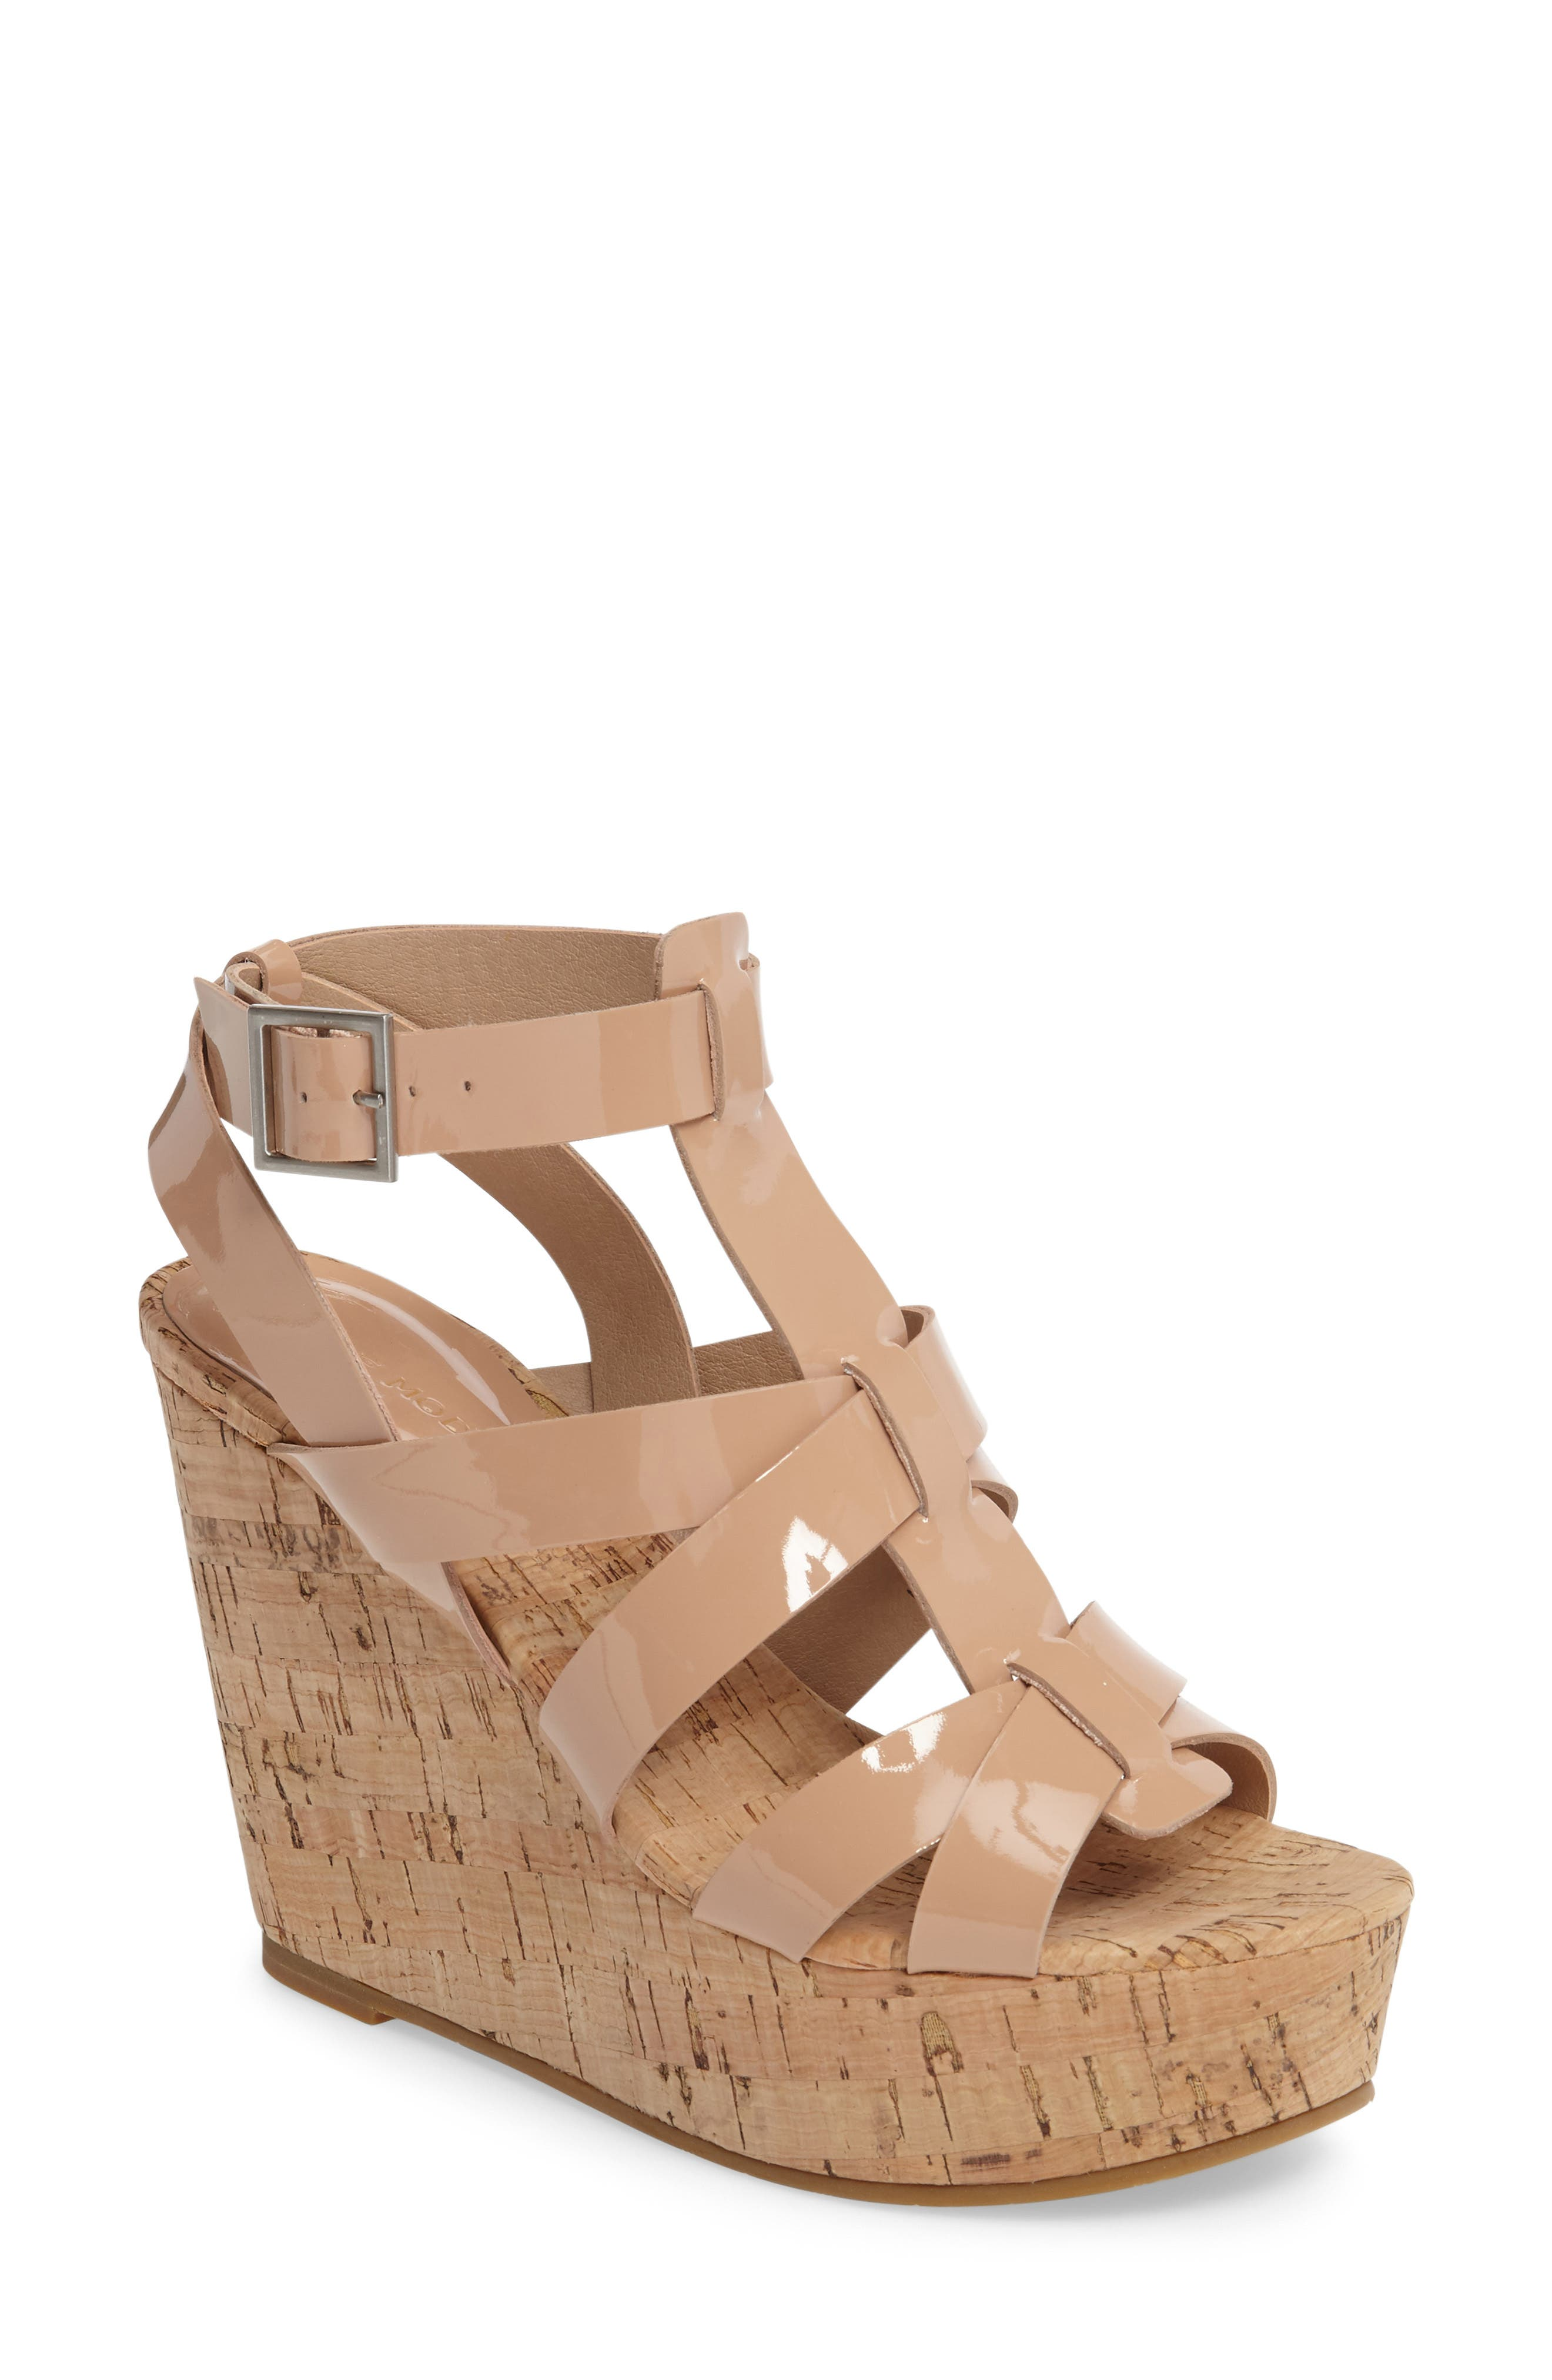 Rayjay Wedge Sandal,                             Main thumbnail 1, color,                             Blush Leather